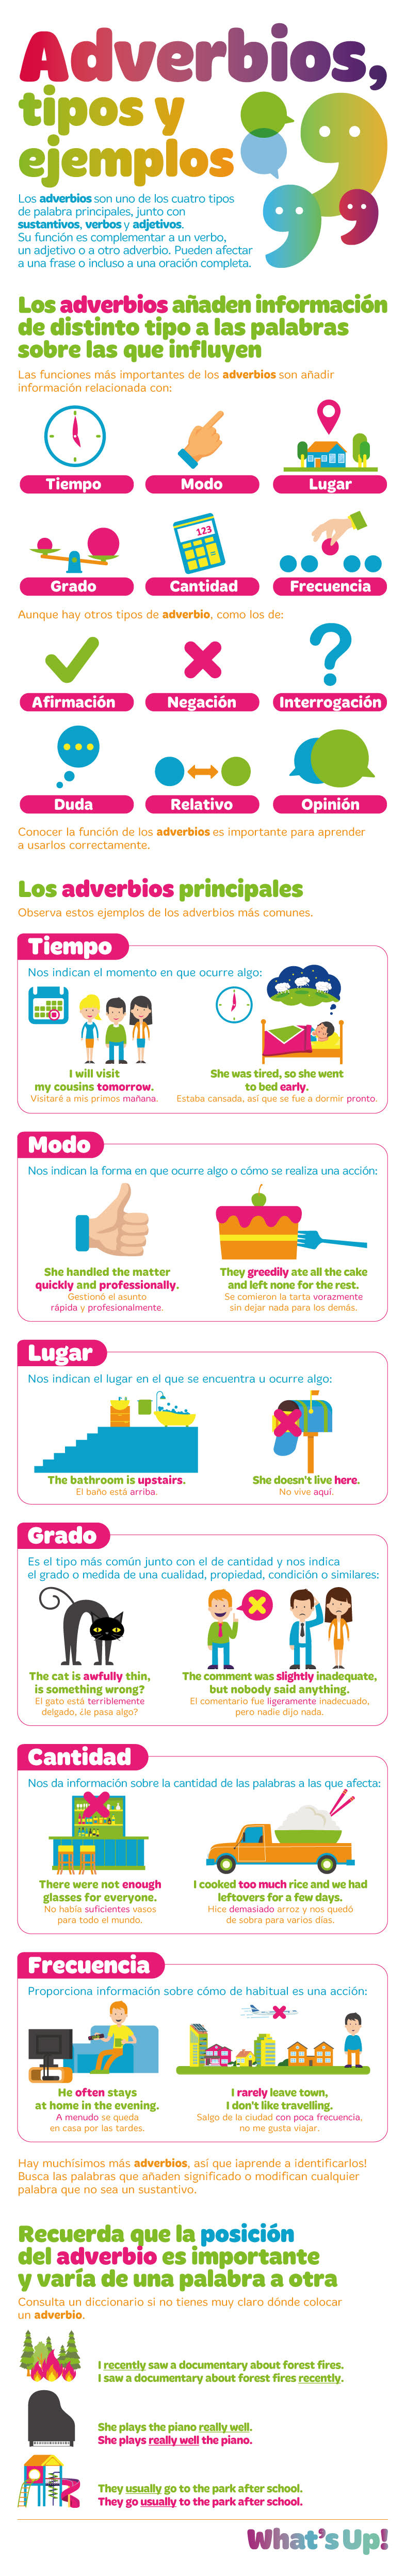 Infografia-adverbios